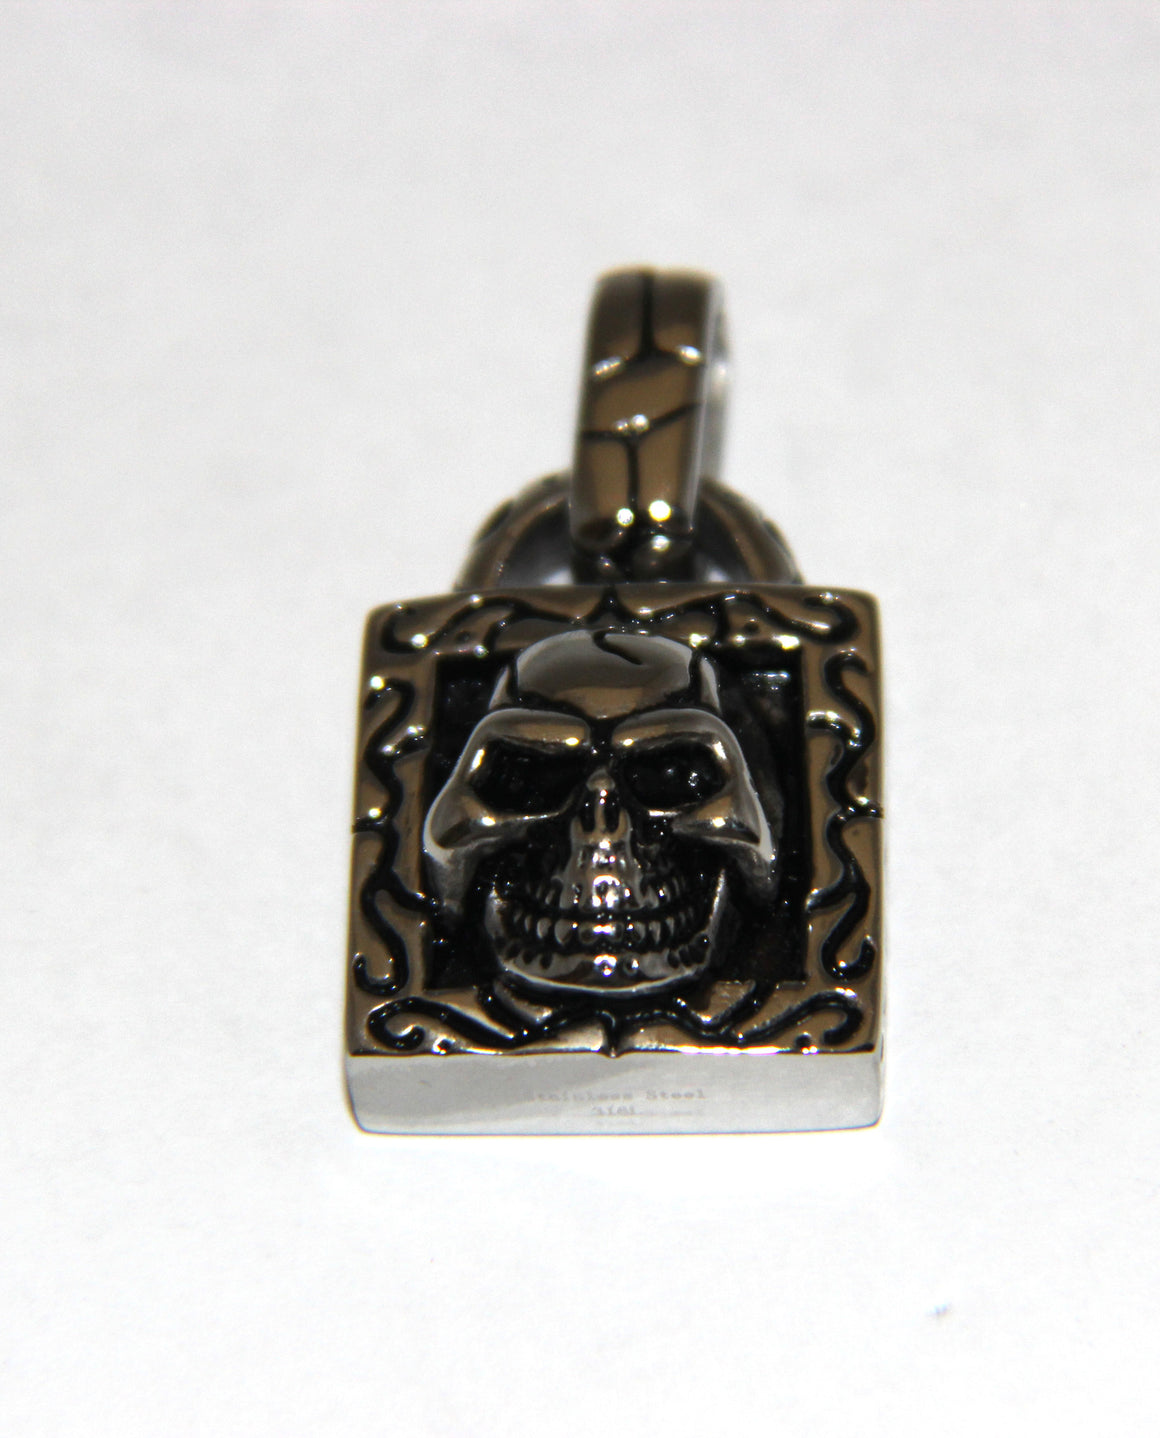 Stainless Steel Skull Square Pendant with Bail - UDINC0460